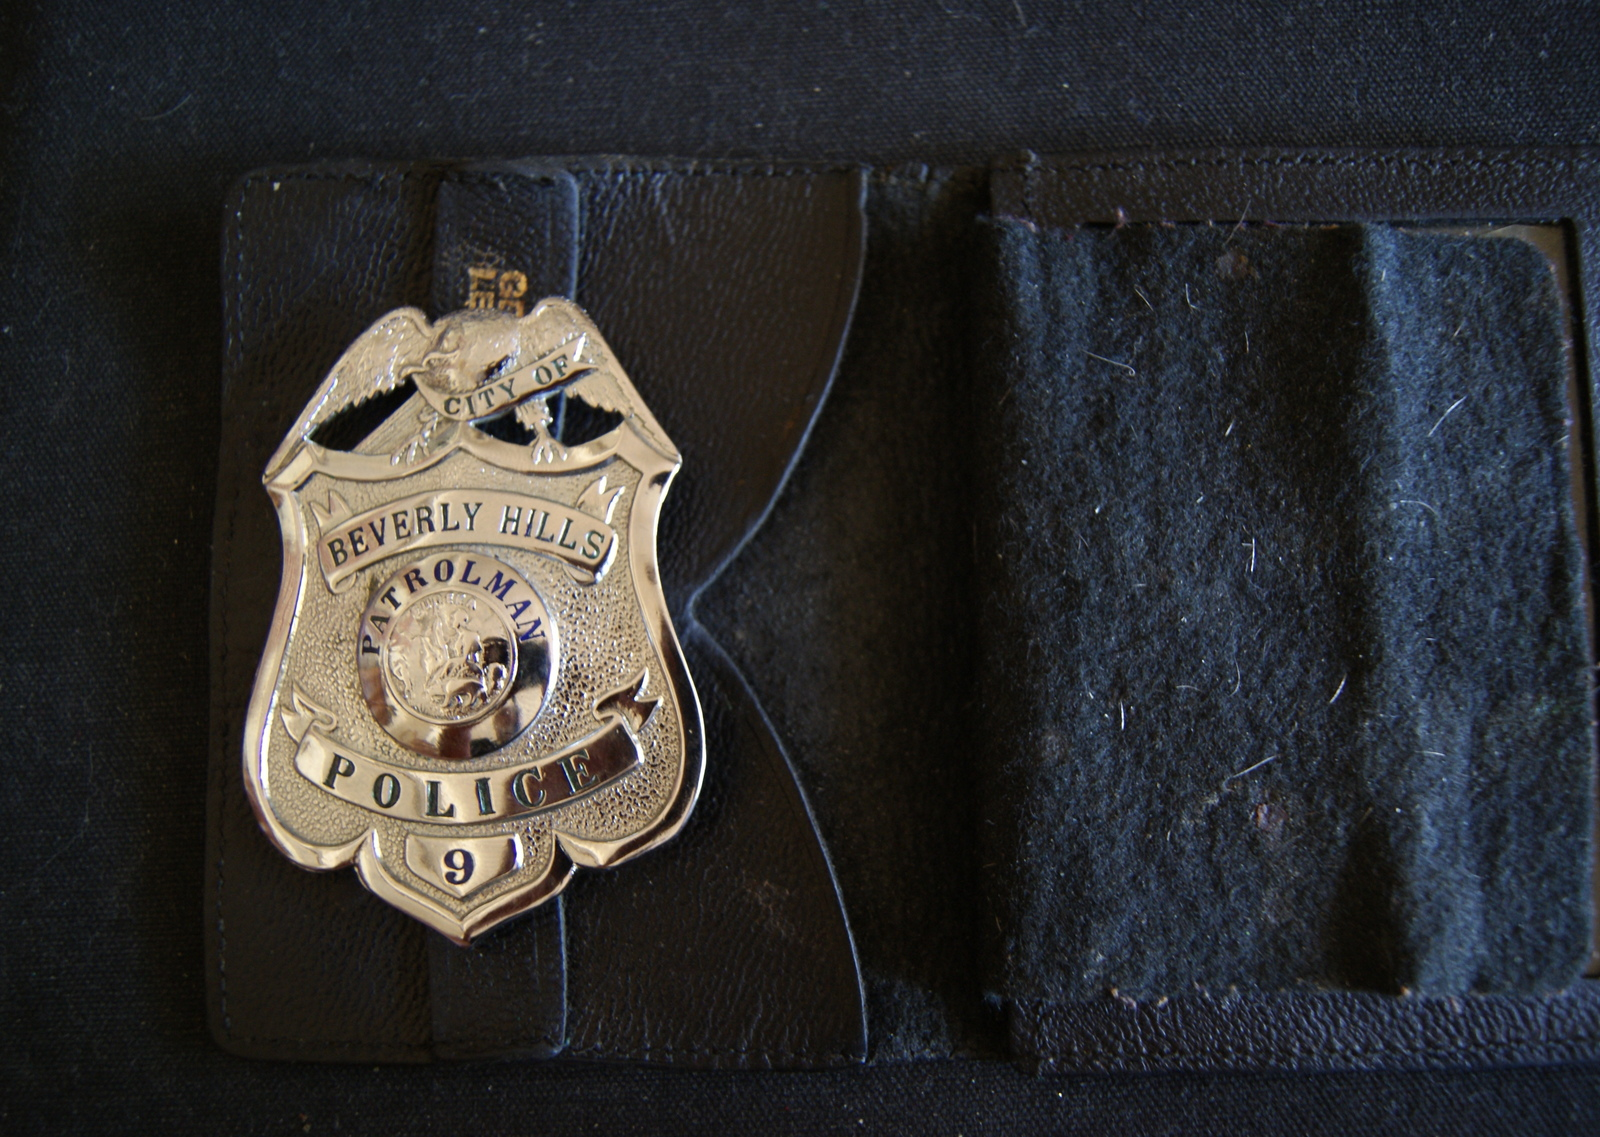 Beverly Hills Cal,Scarce Antique Police Badge W/ Wallet,.Hmk L.A Rubber Stamp Co image 2